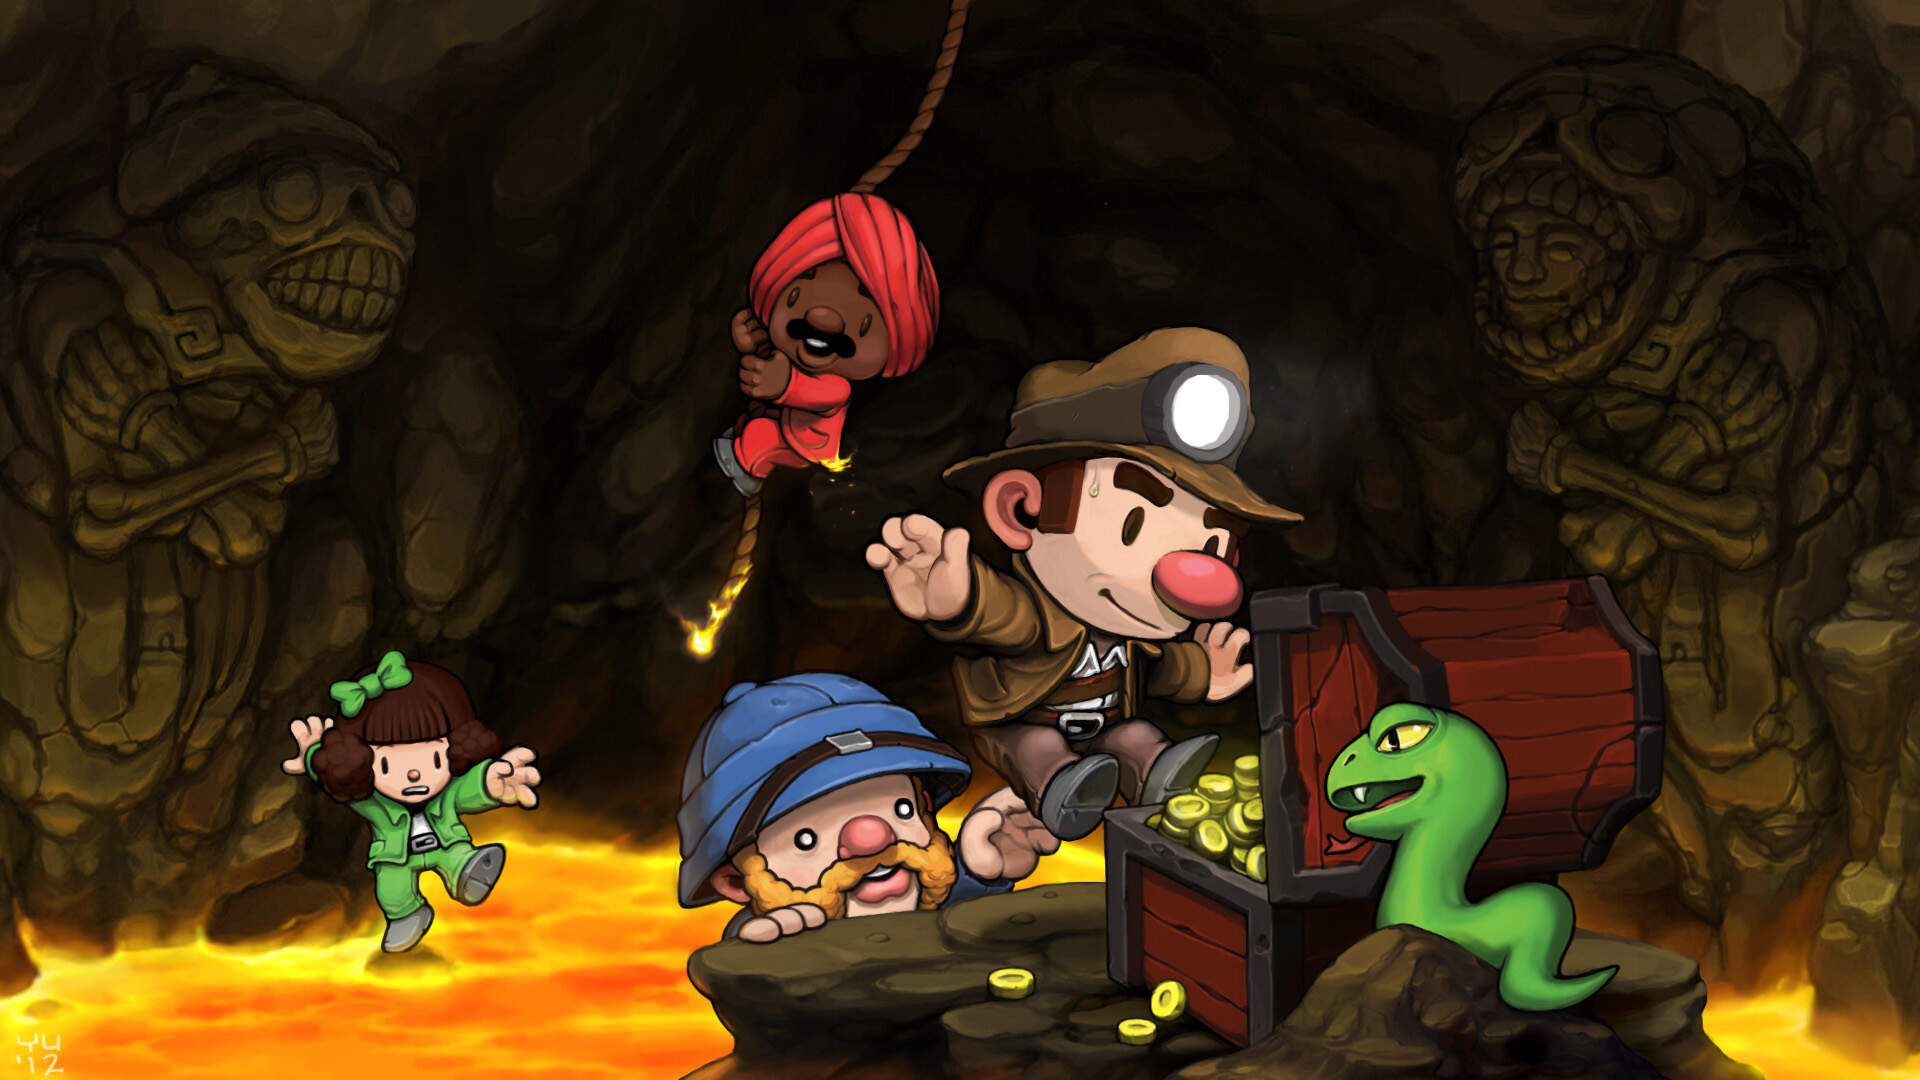 Spelunky Speedrunner Makes Two of Its Hardest Challenges Look Like a Total Breeze